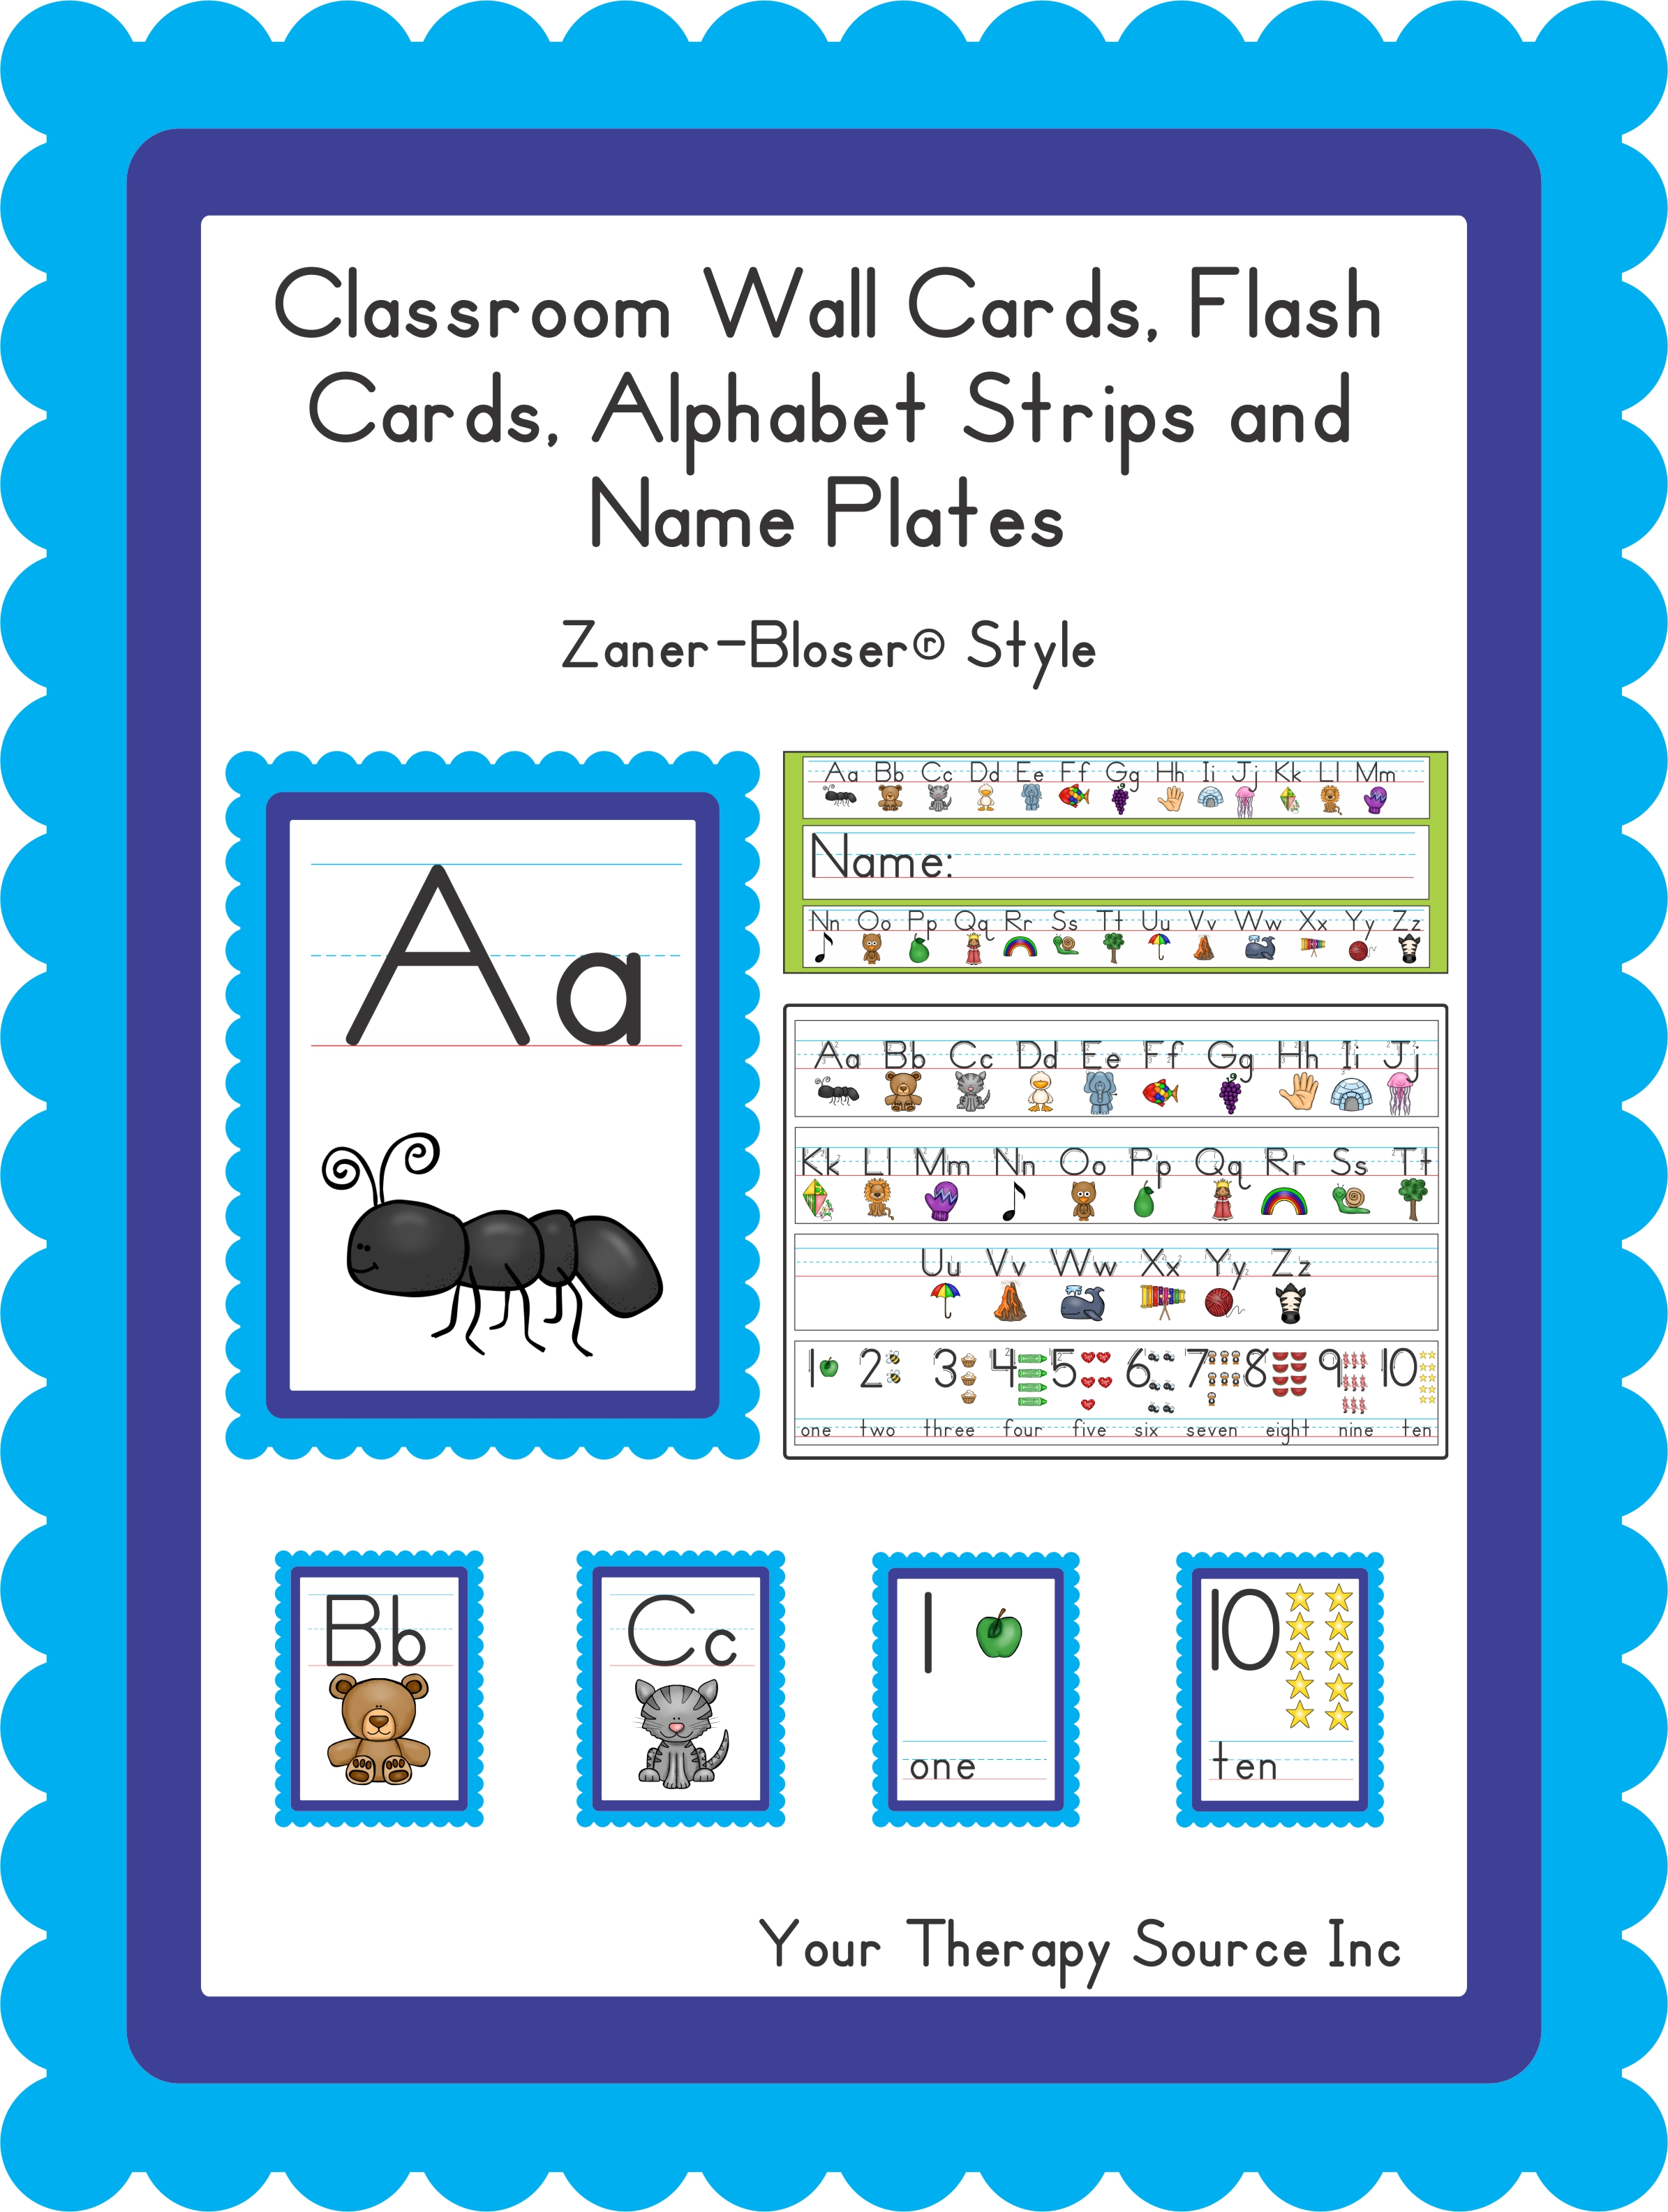 picture about Alphabet Strip Printable referred to as Clroom Wall Playing cards, Flash Playing cards, Alphabet Strips and Status Plates Handwriting devoid of Tears® and Zaner-Bloser® Style and design